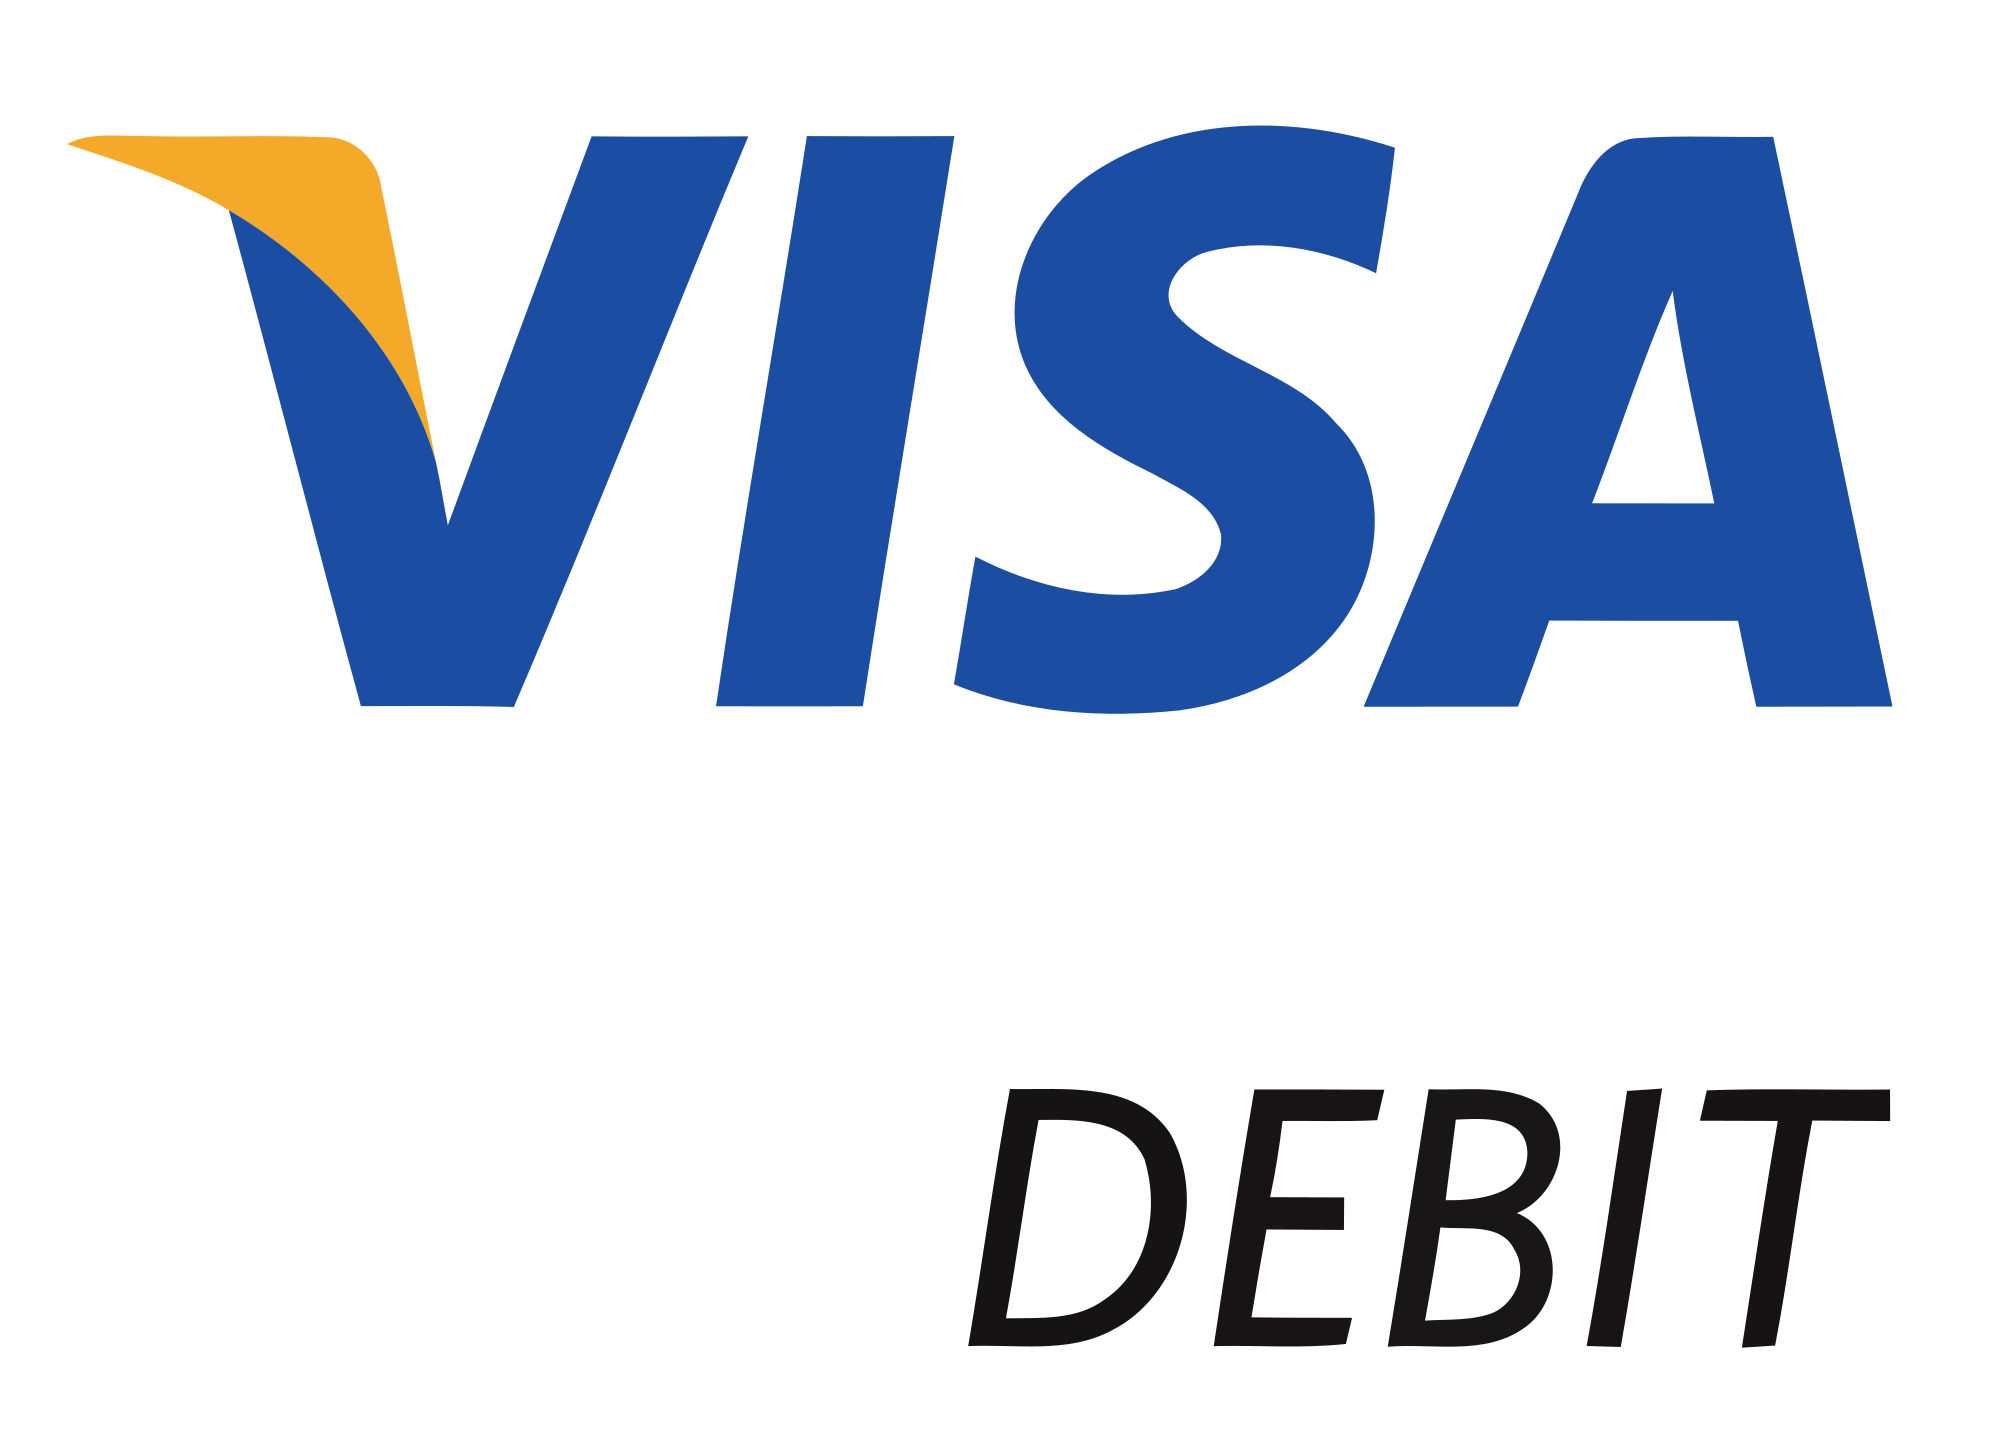 Icon Request: VISA Debit - fa-cc-visa-debit · Issue #11702